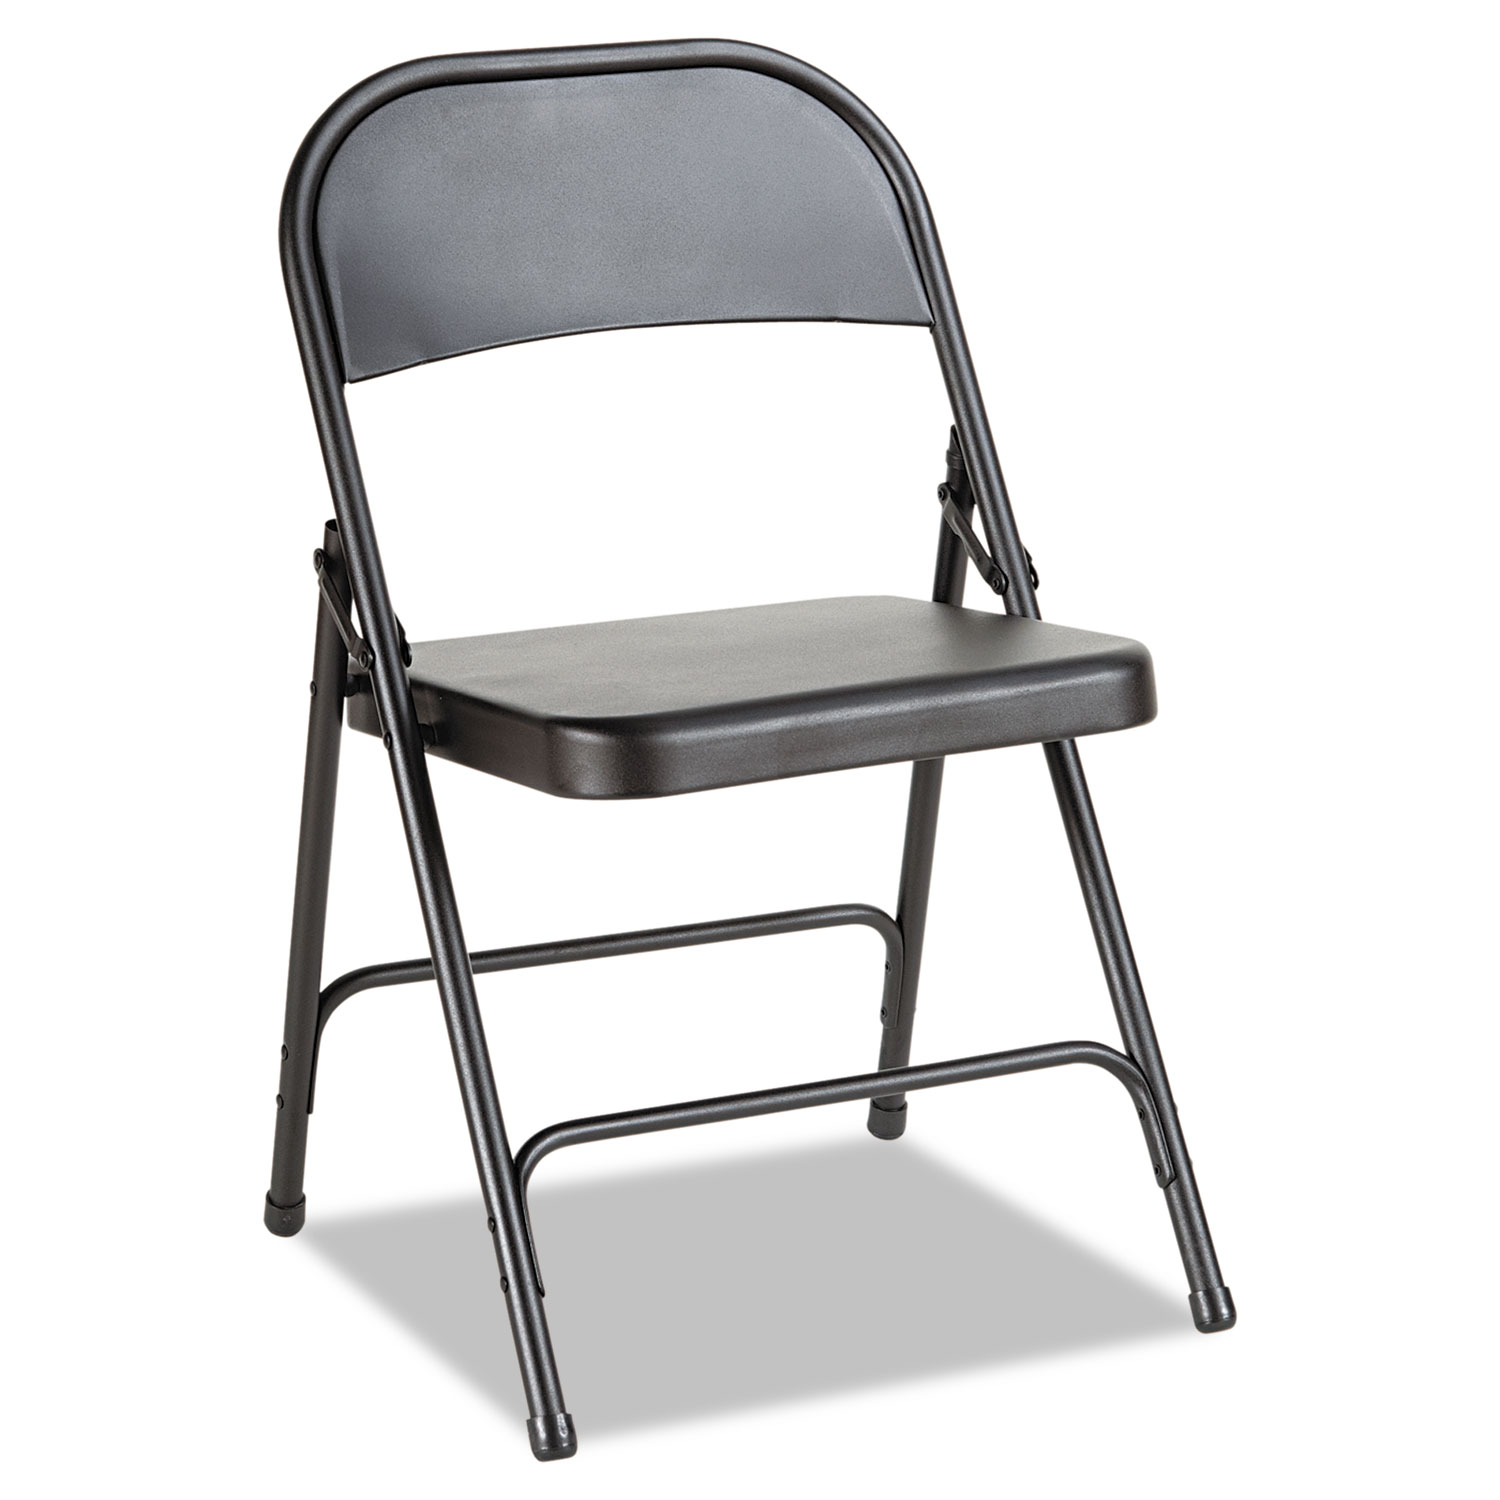 Awe Inspiring Steel Folding Chair With Two Brace Support Graphite Seat Graphite Back Graphite Base 4 Carton Theyellowbook Wood Chair Design Ideas Theyellowbookinfo